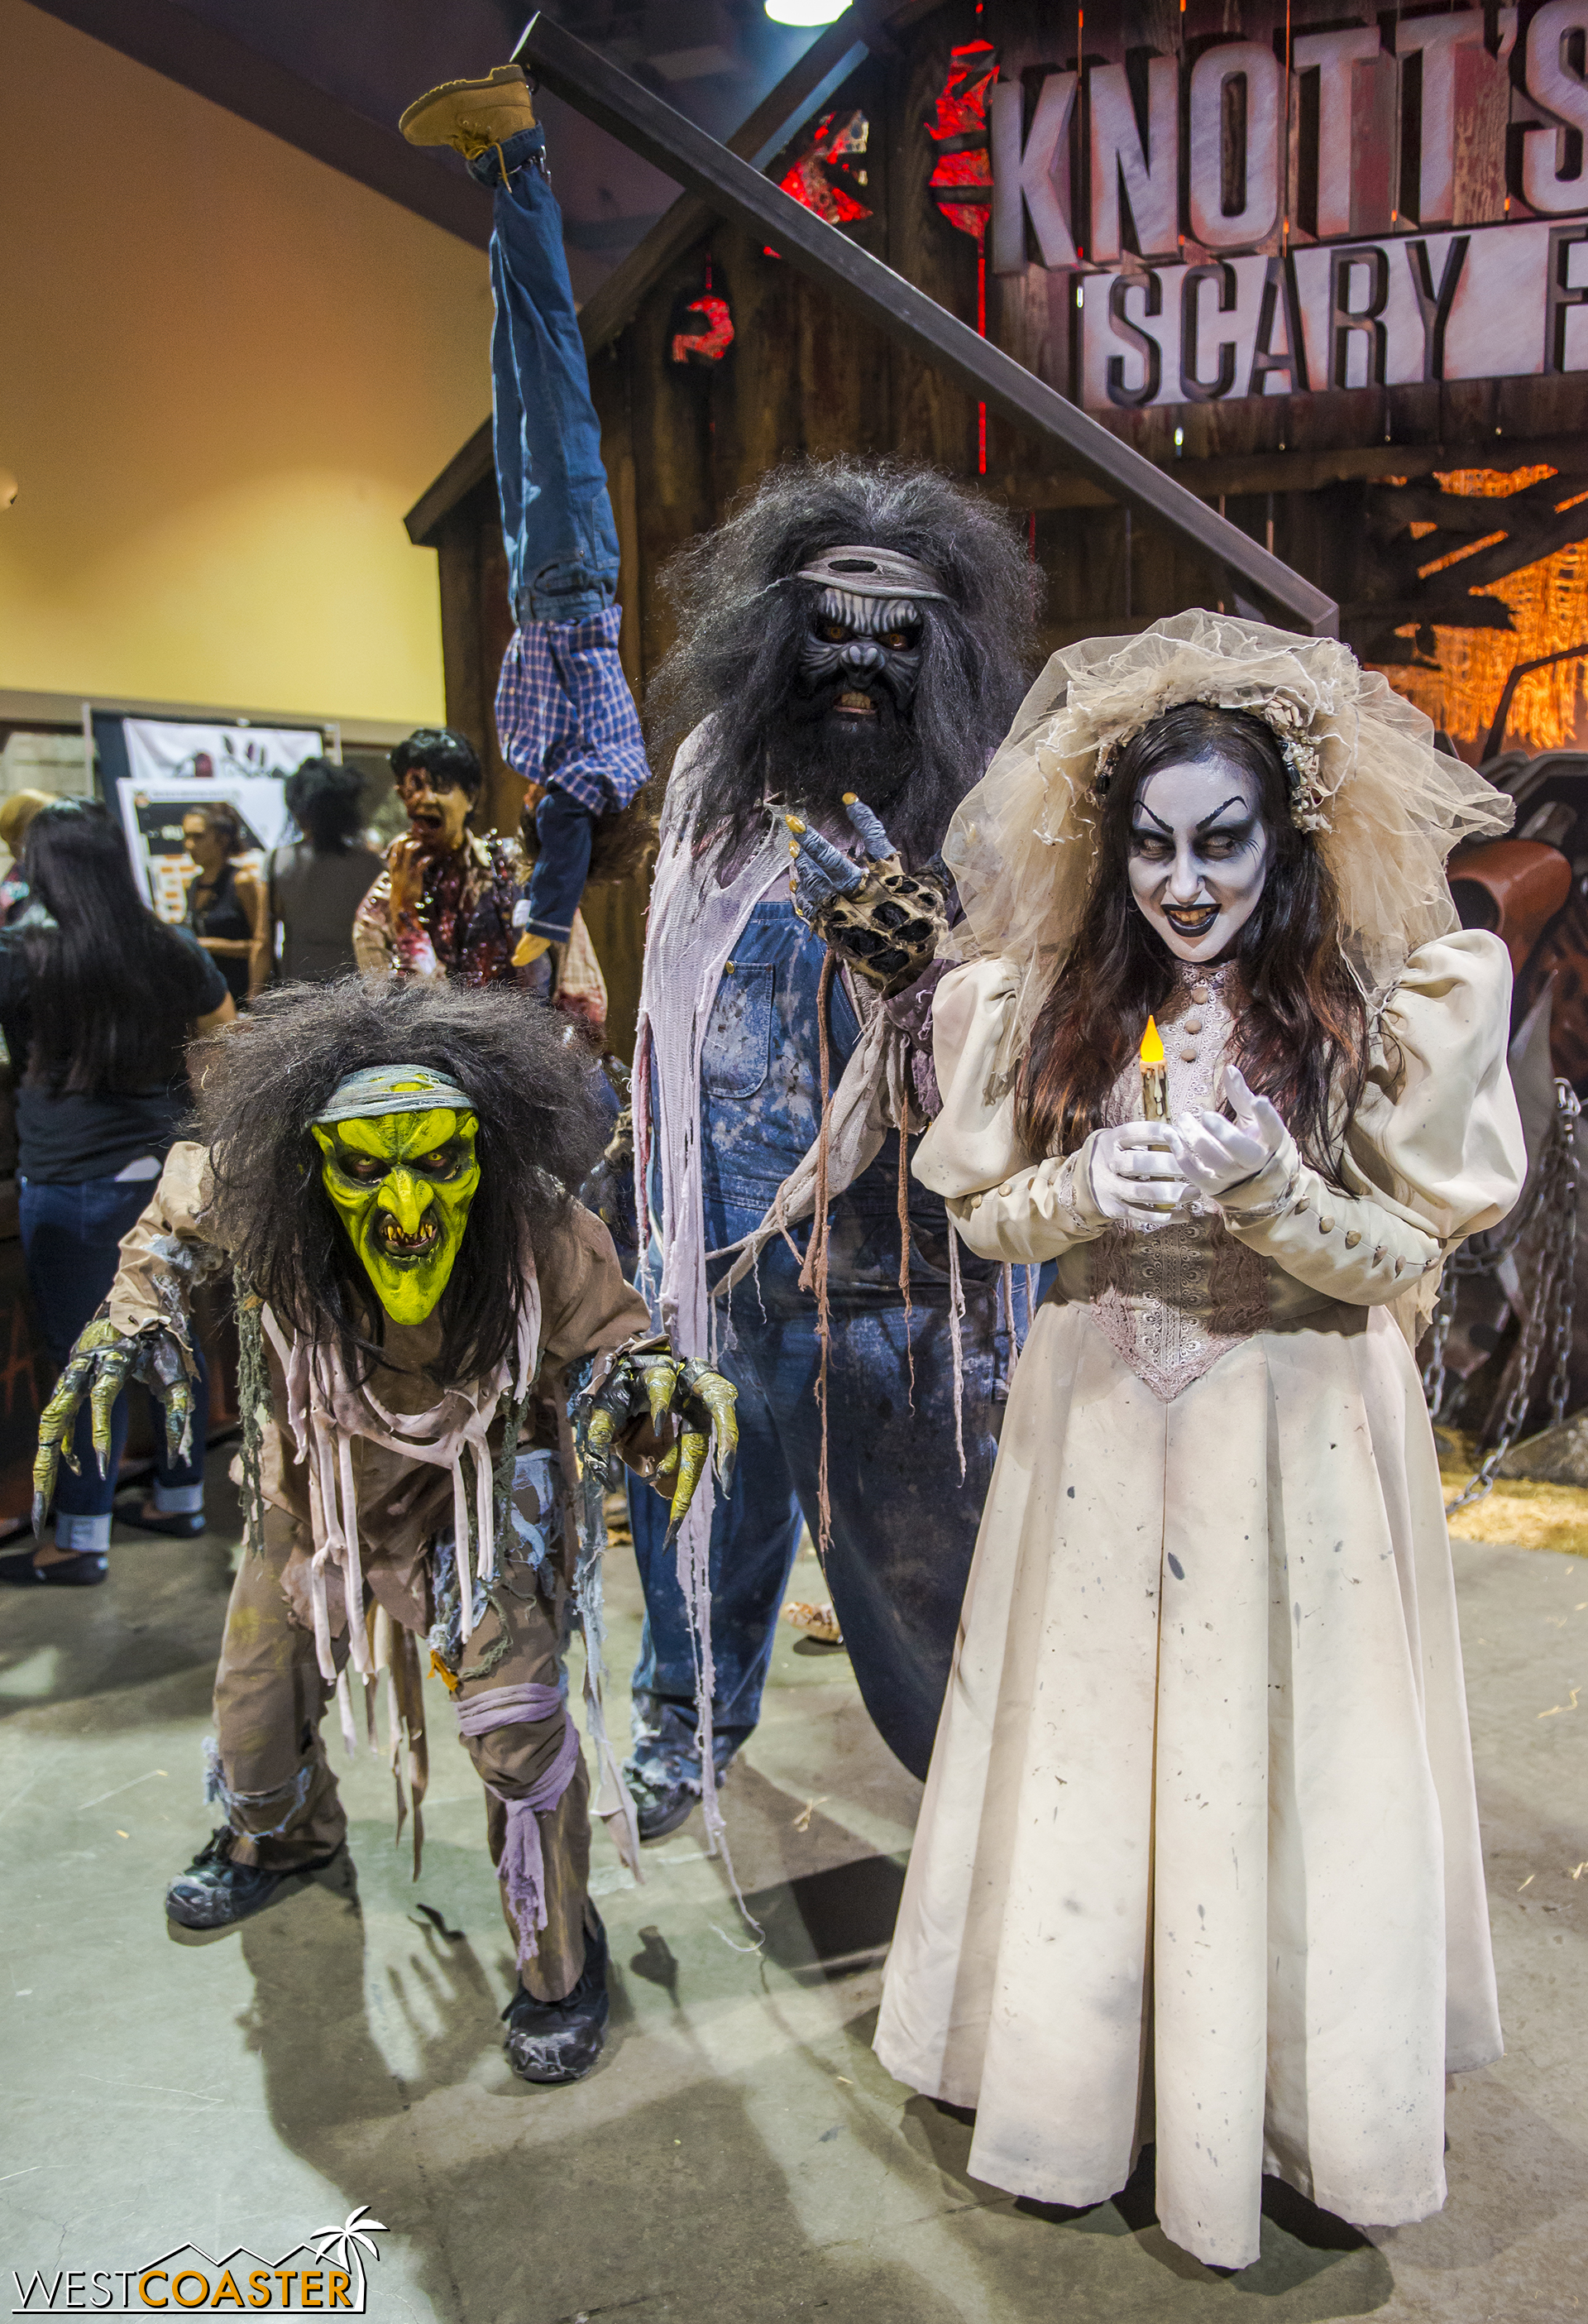 One of my favorite booths was the spectacular Knott's Scary Farm booth, complete with creepy monsters ready for photo ops... and soul stealing.